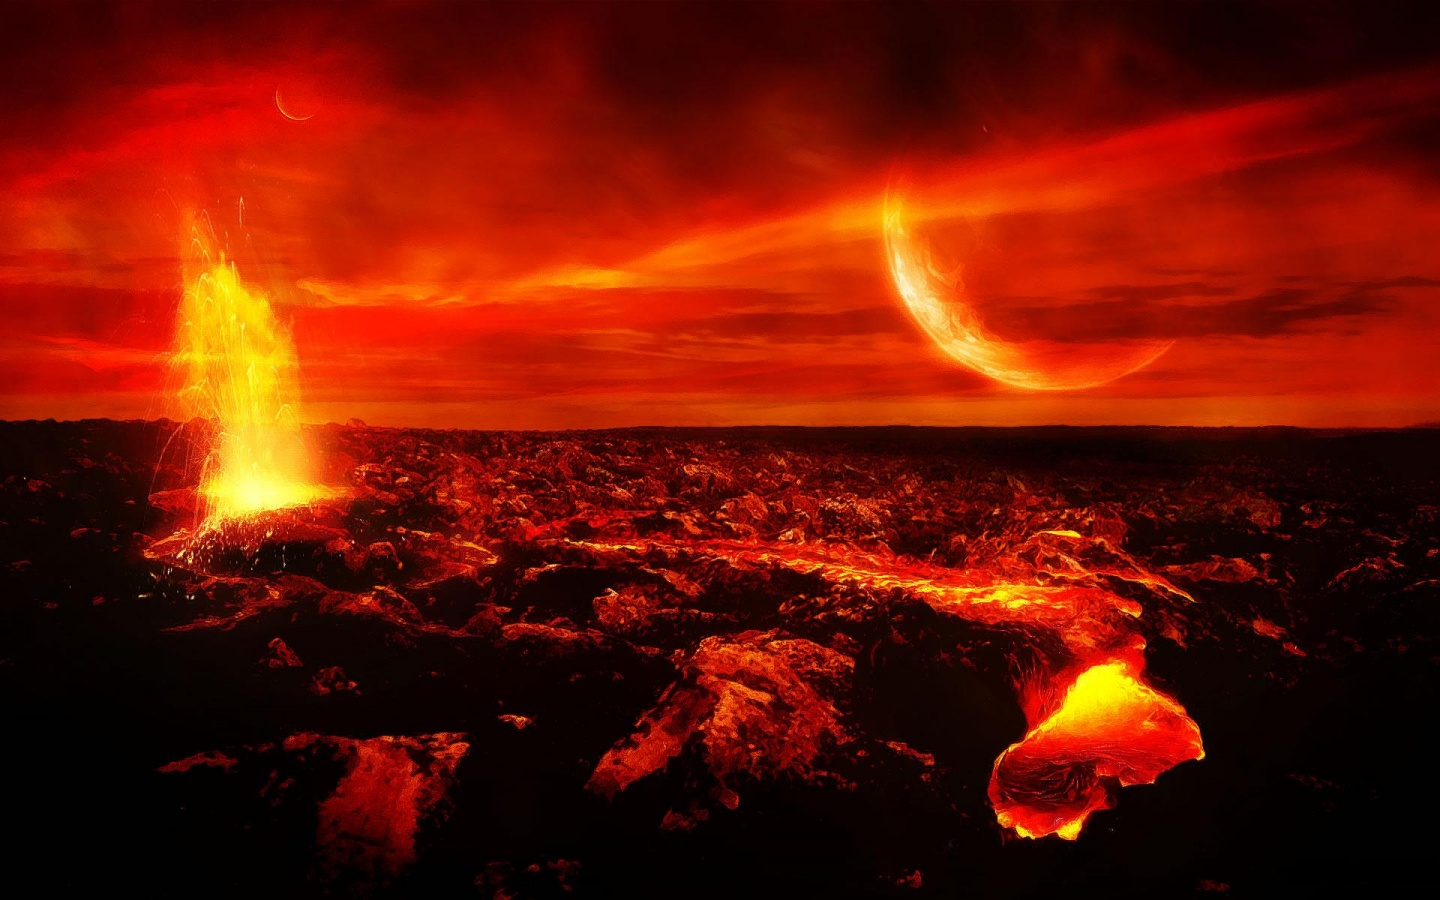 HD Volcano Wallpaper 1920x1080p - WallpaperSafari